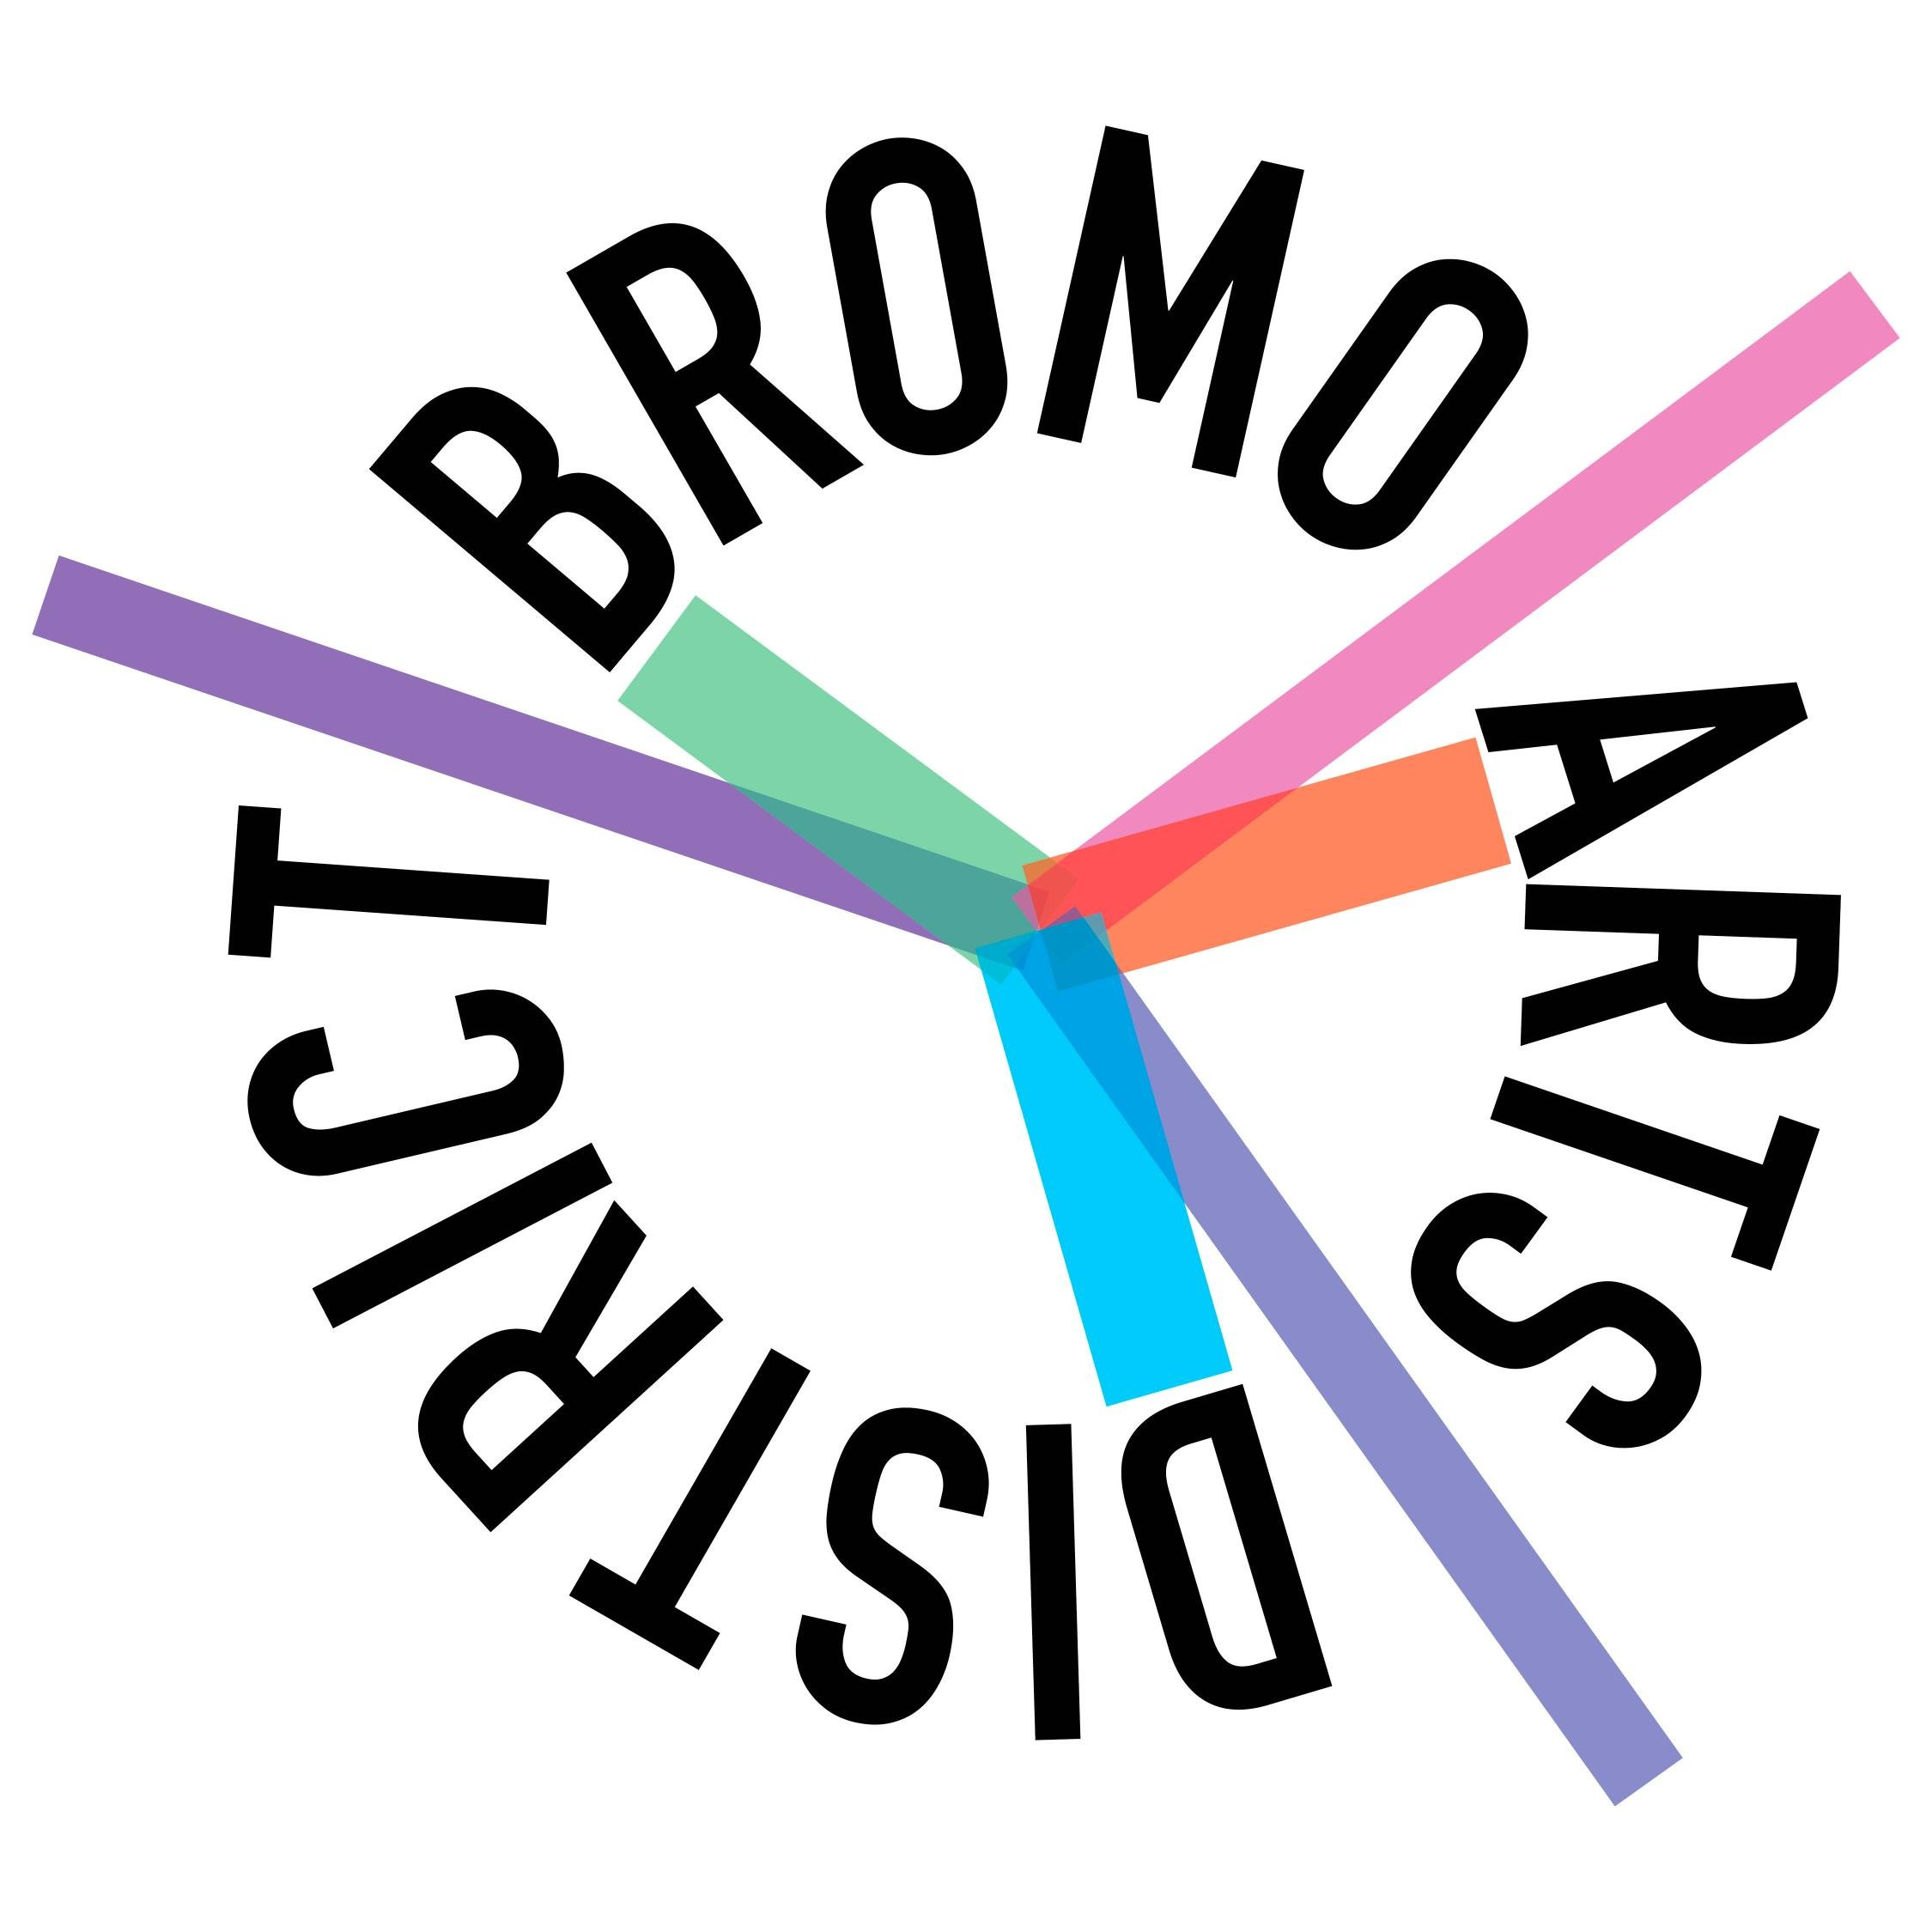 Bromo clipart #8, Download drawings